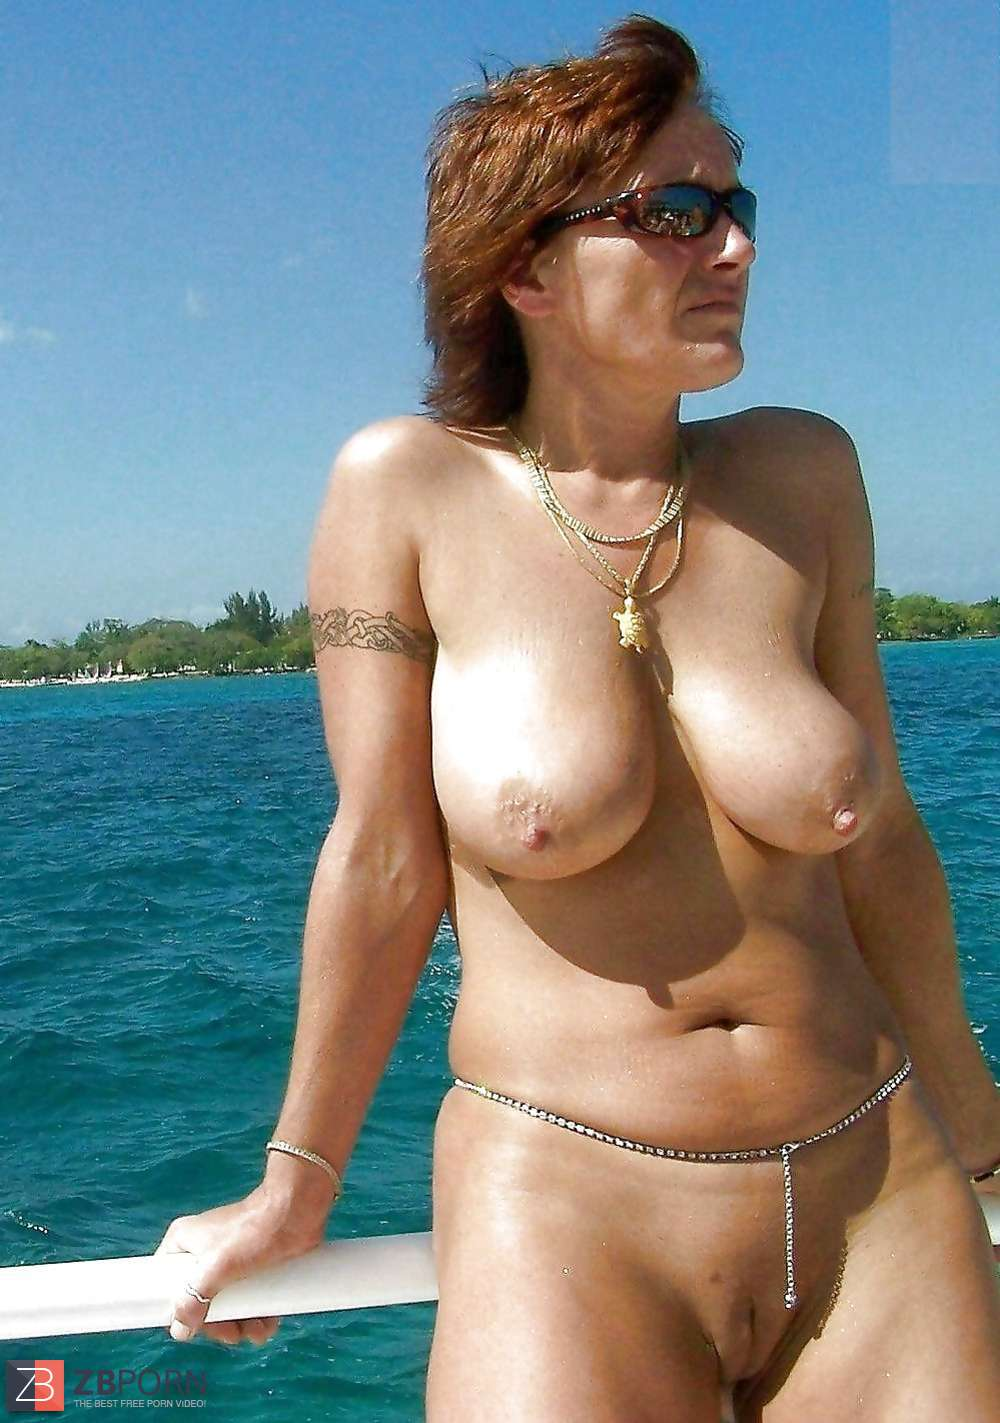 Old Lady Nude Beach